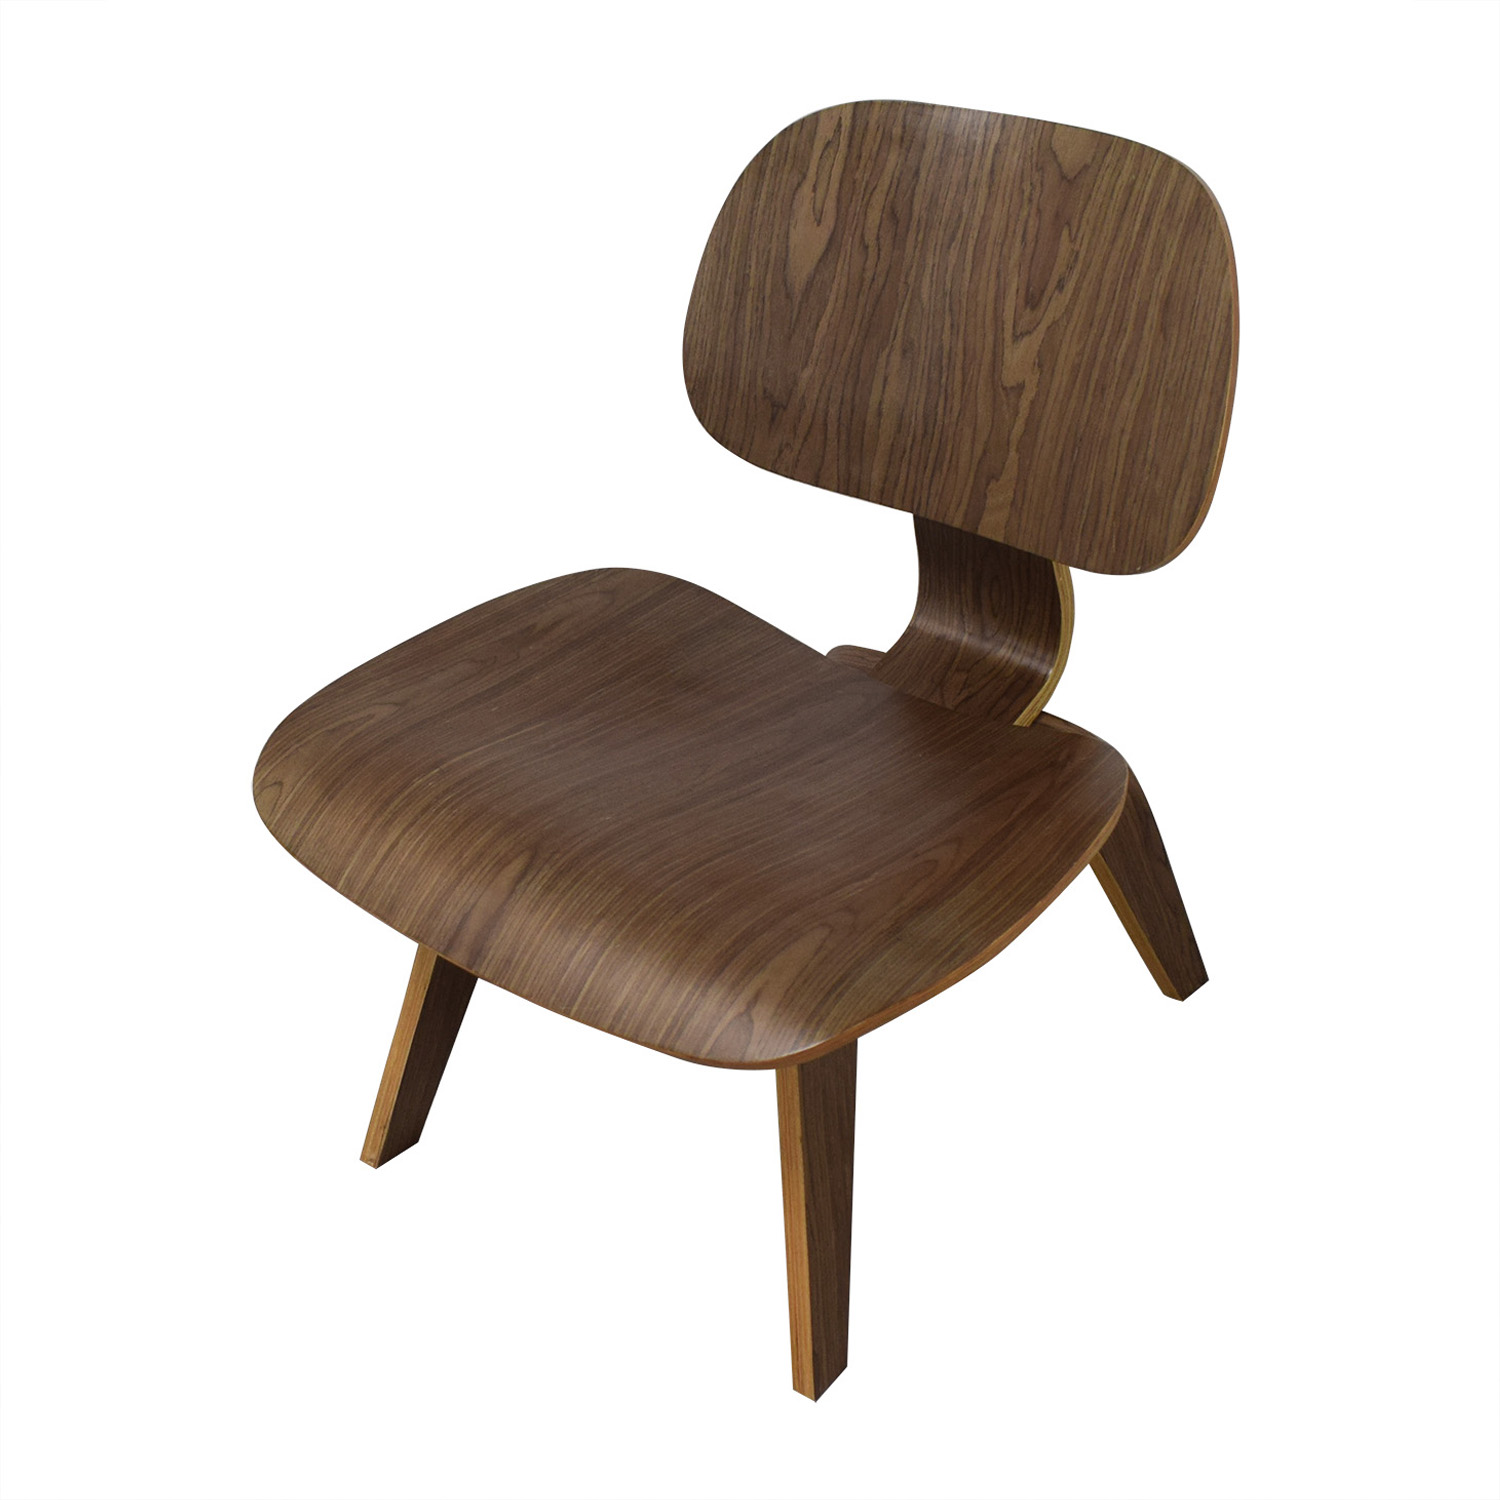 buy Modway Modway Natural Fathom Plywood Dining Chairs online